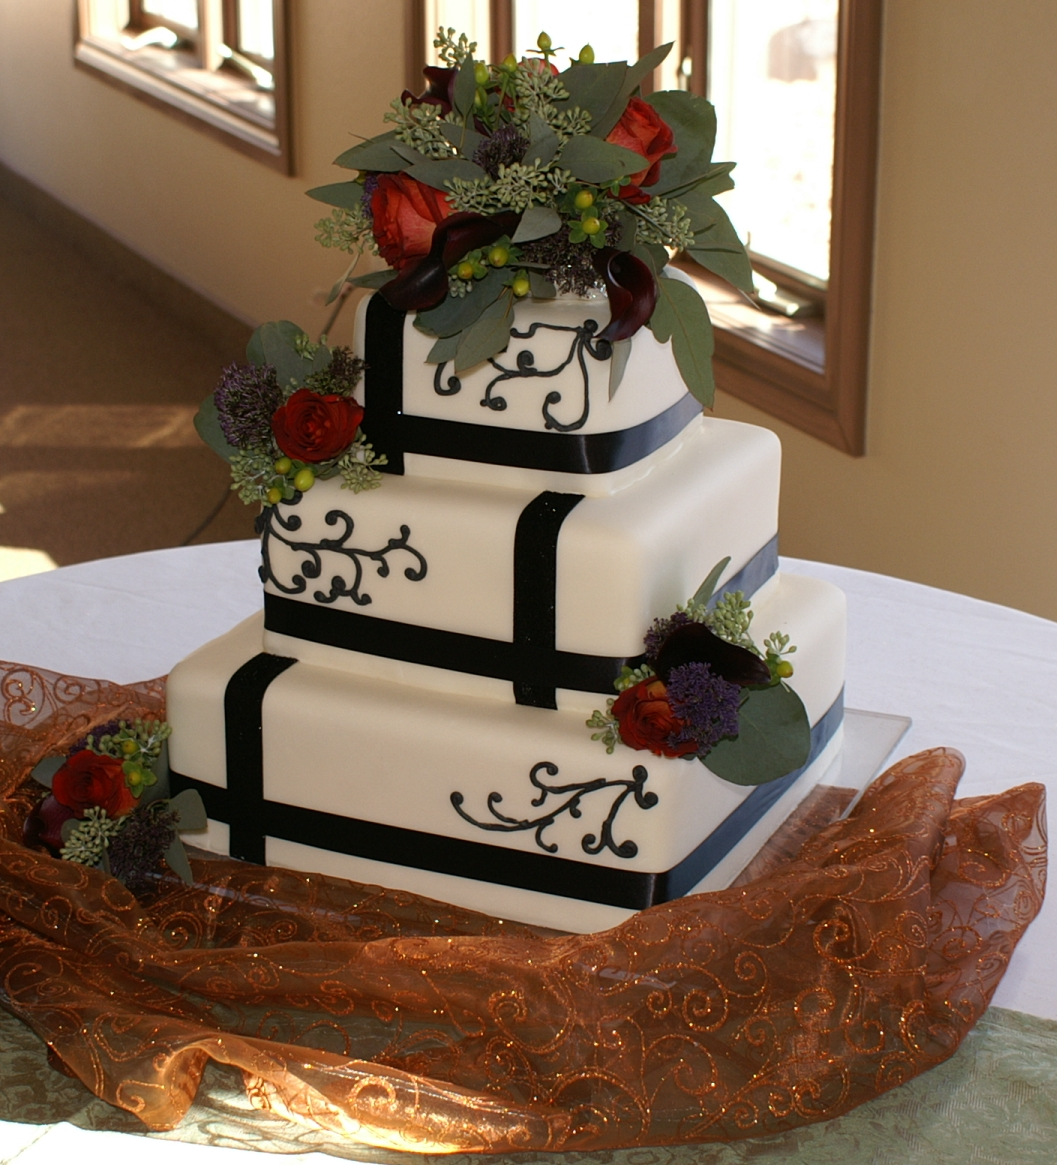 Square Wedding Cake Ideas: Pace Of Cakes: Square Cake For Suzie